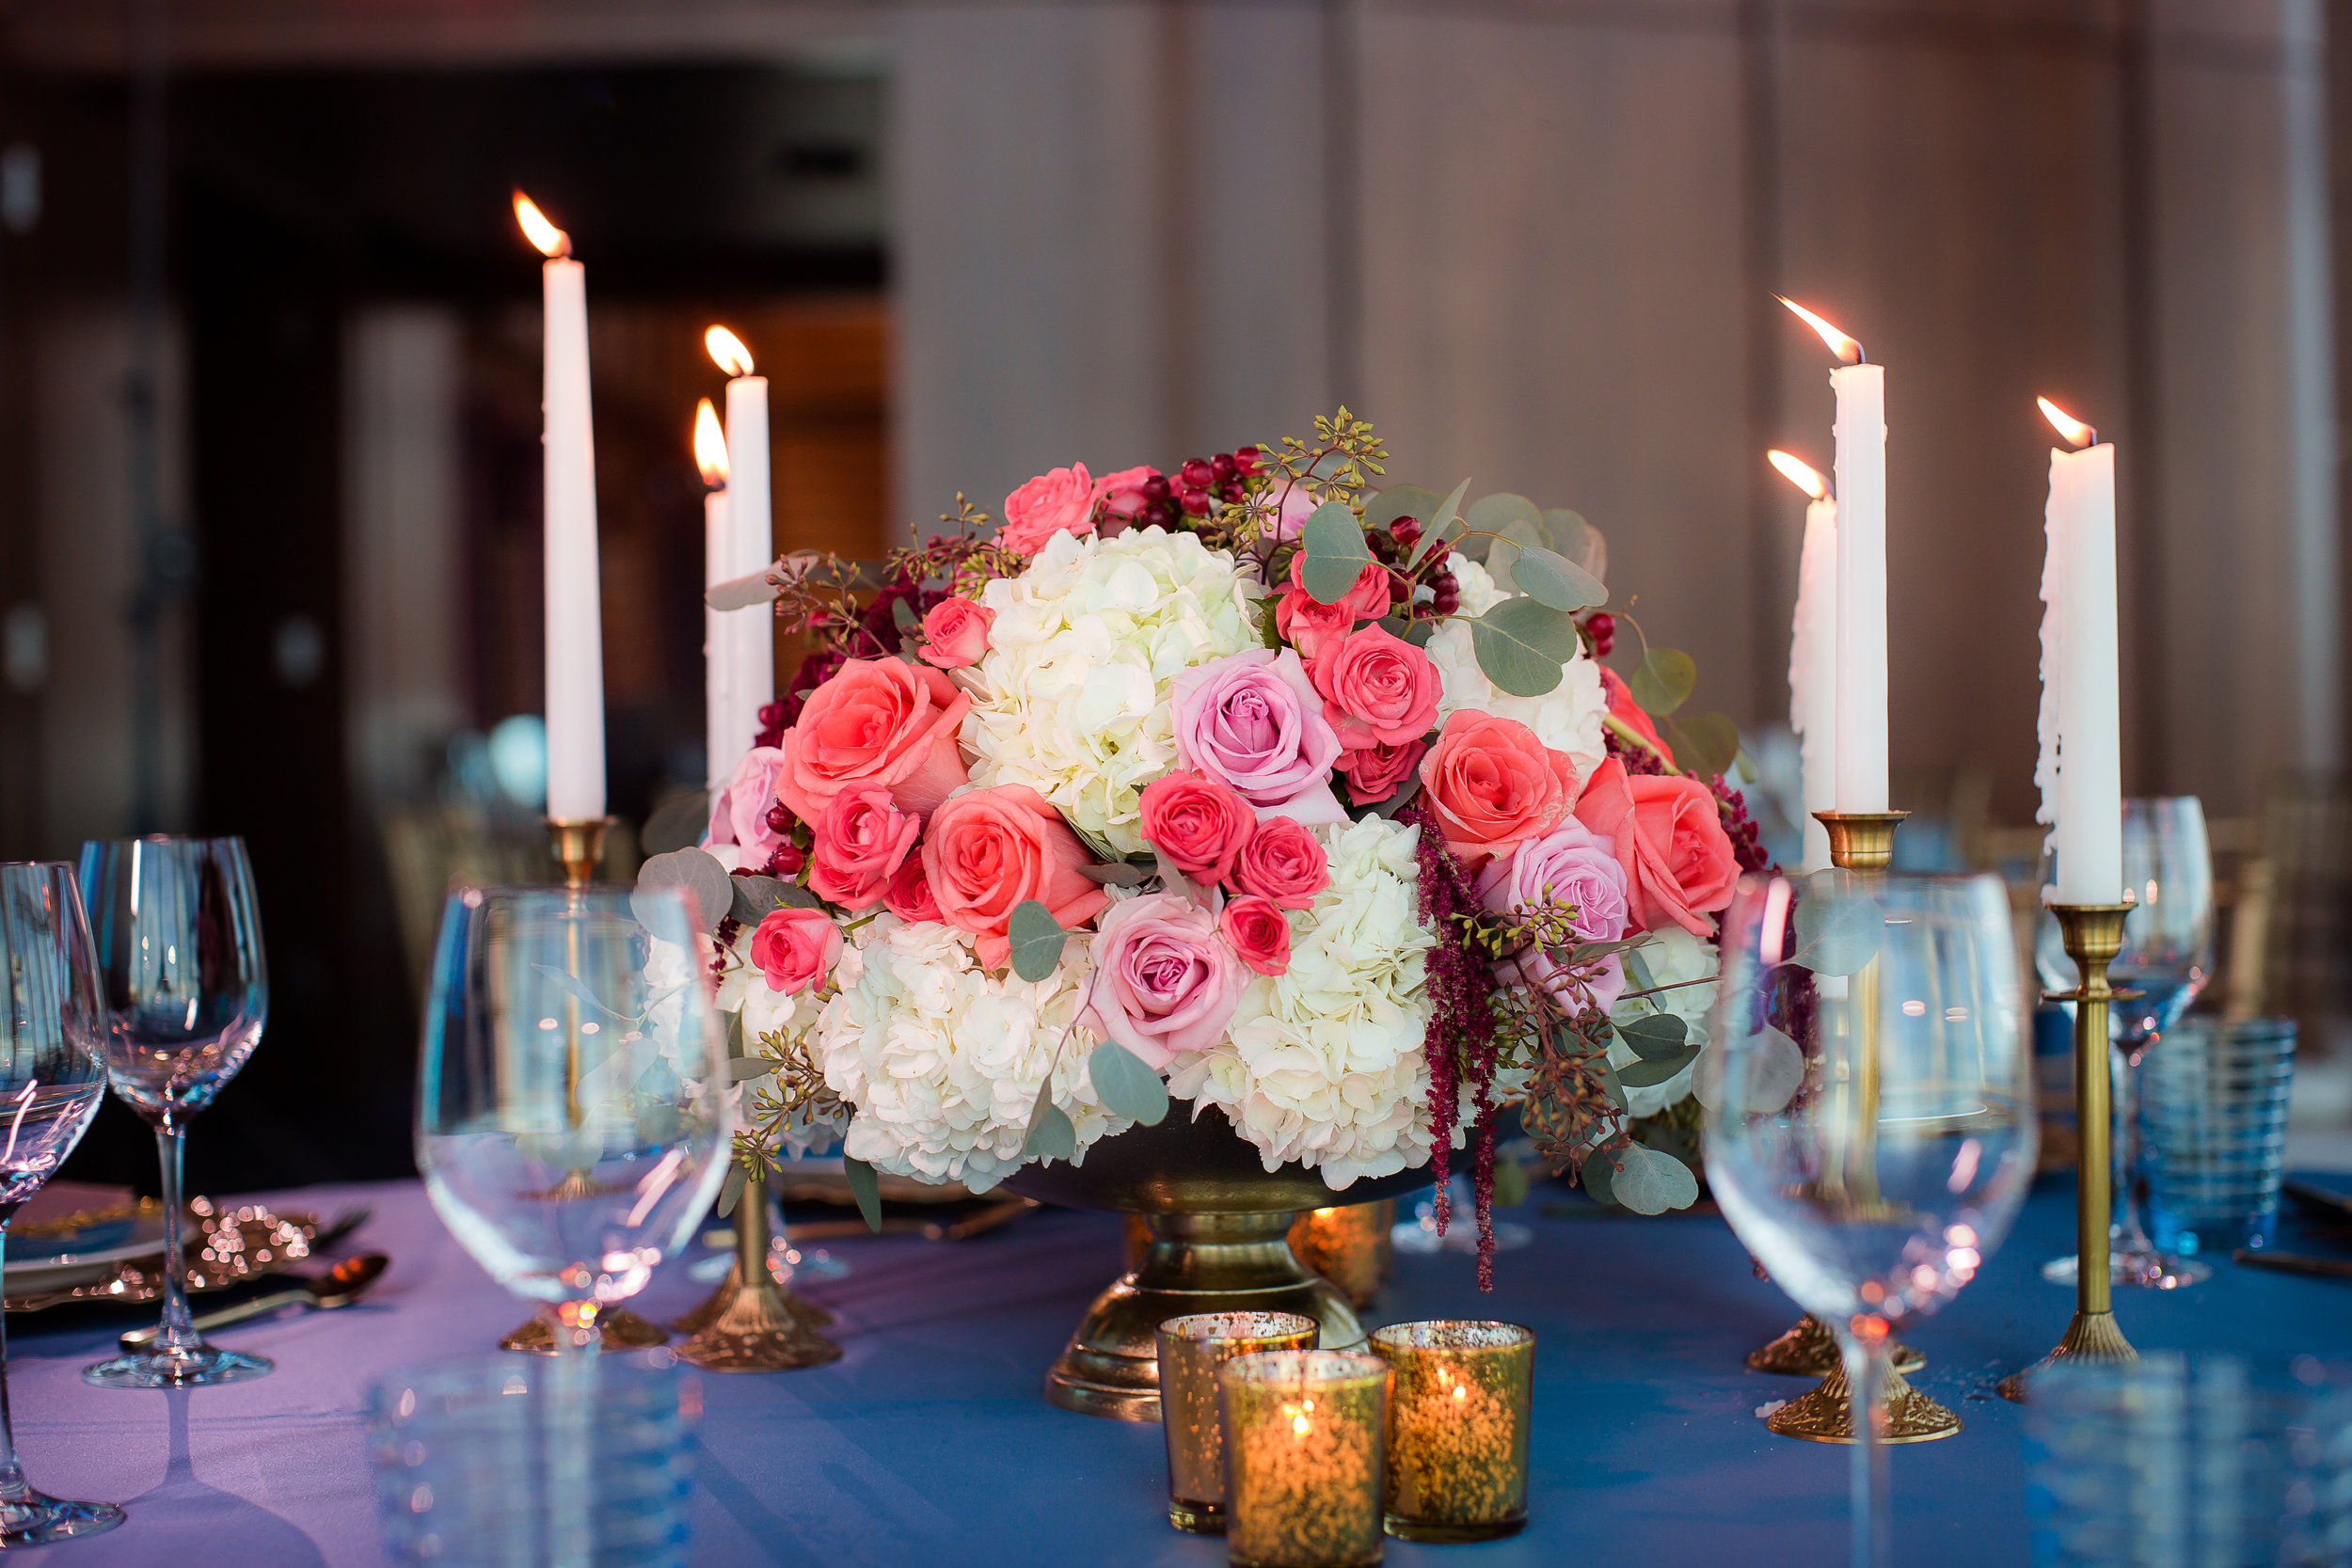 Live candles at wedding reception with blue linen and rich centerpieces.     Styled Wedding Shoot inspired by French Blue.    Las Vegas Wedding Planner  Andrea Eppolito .  Photography by   Rebecca Marie  .  Floral and Decor by   By Dzign  .  Beauty by   Amelia C & Co  .  Shot at Rivea at The Delano.